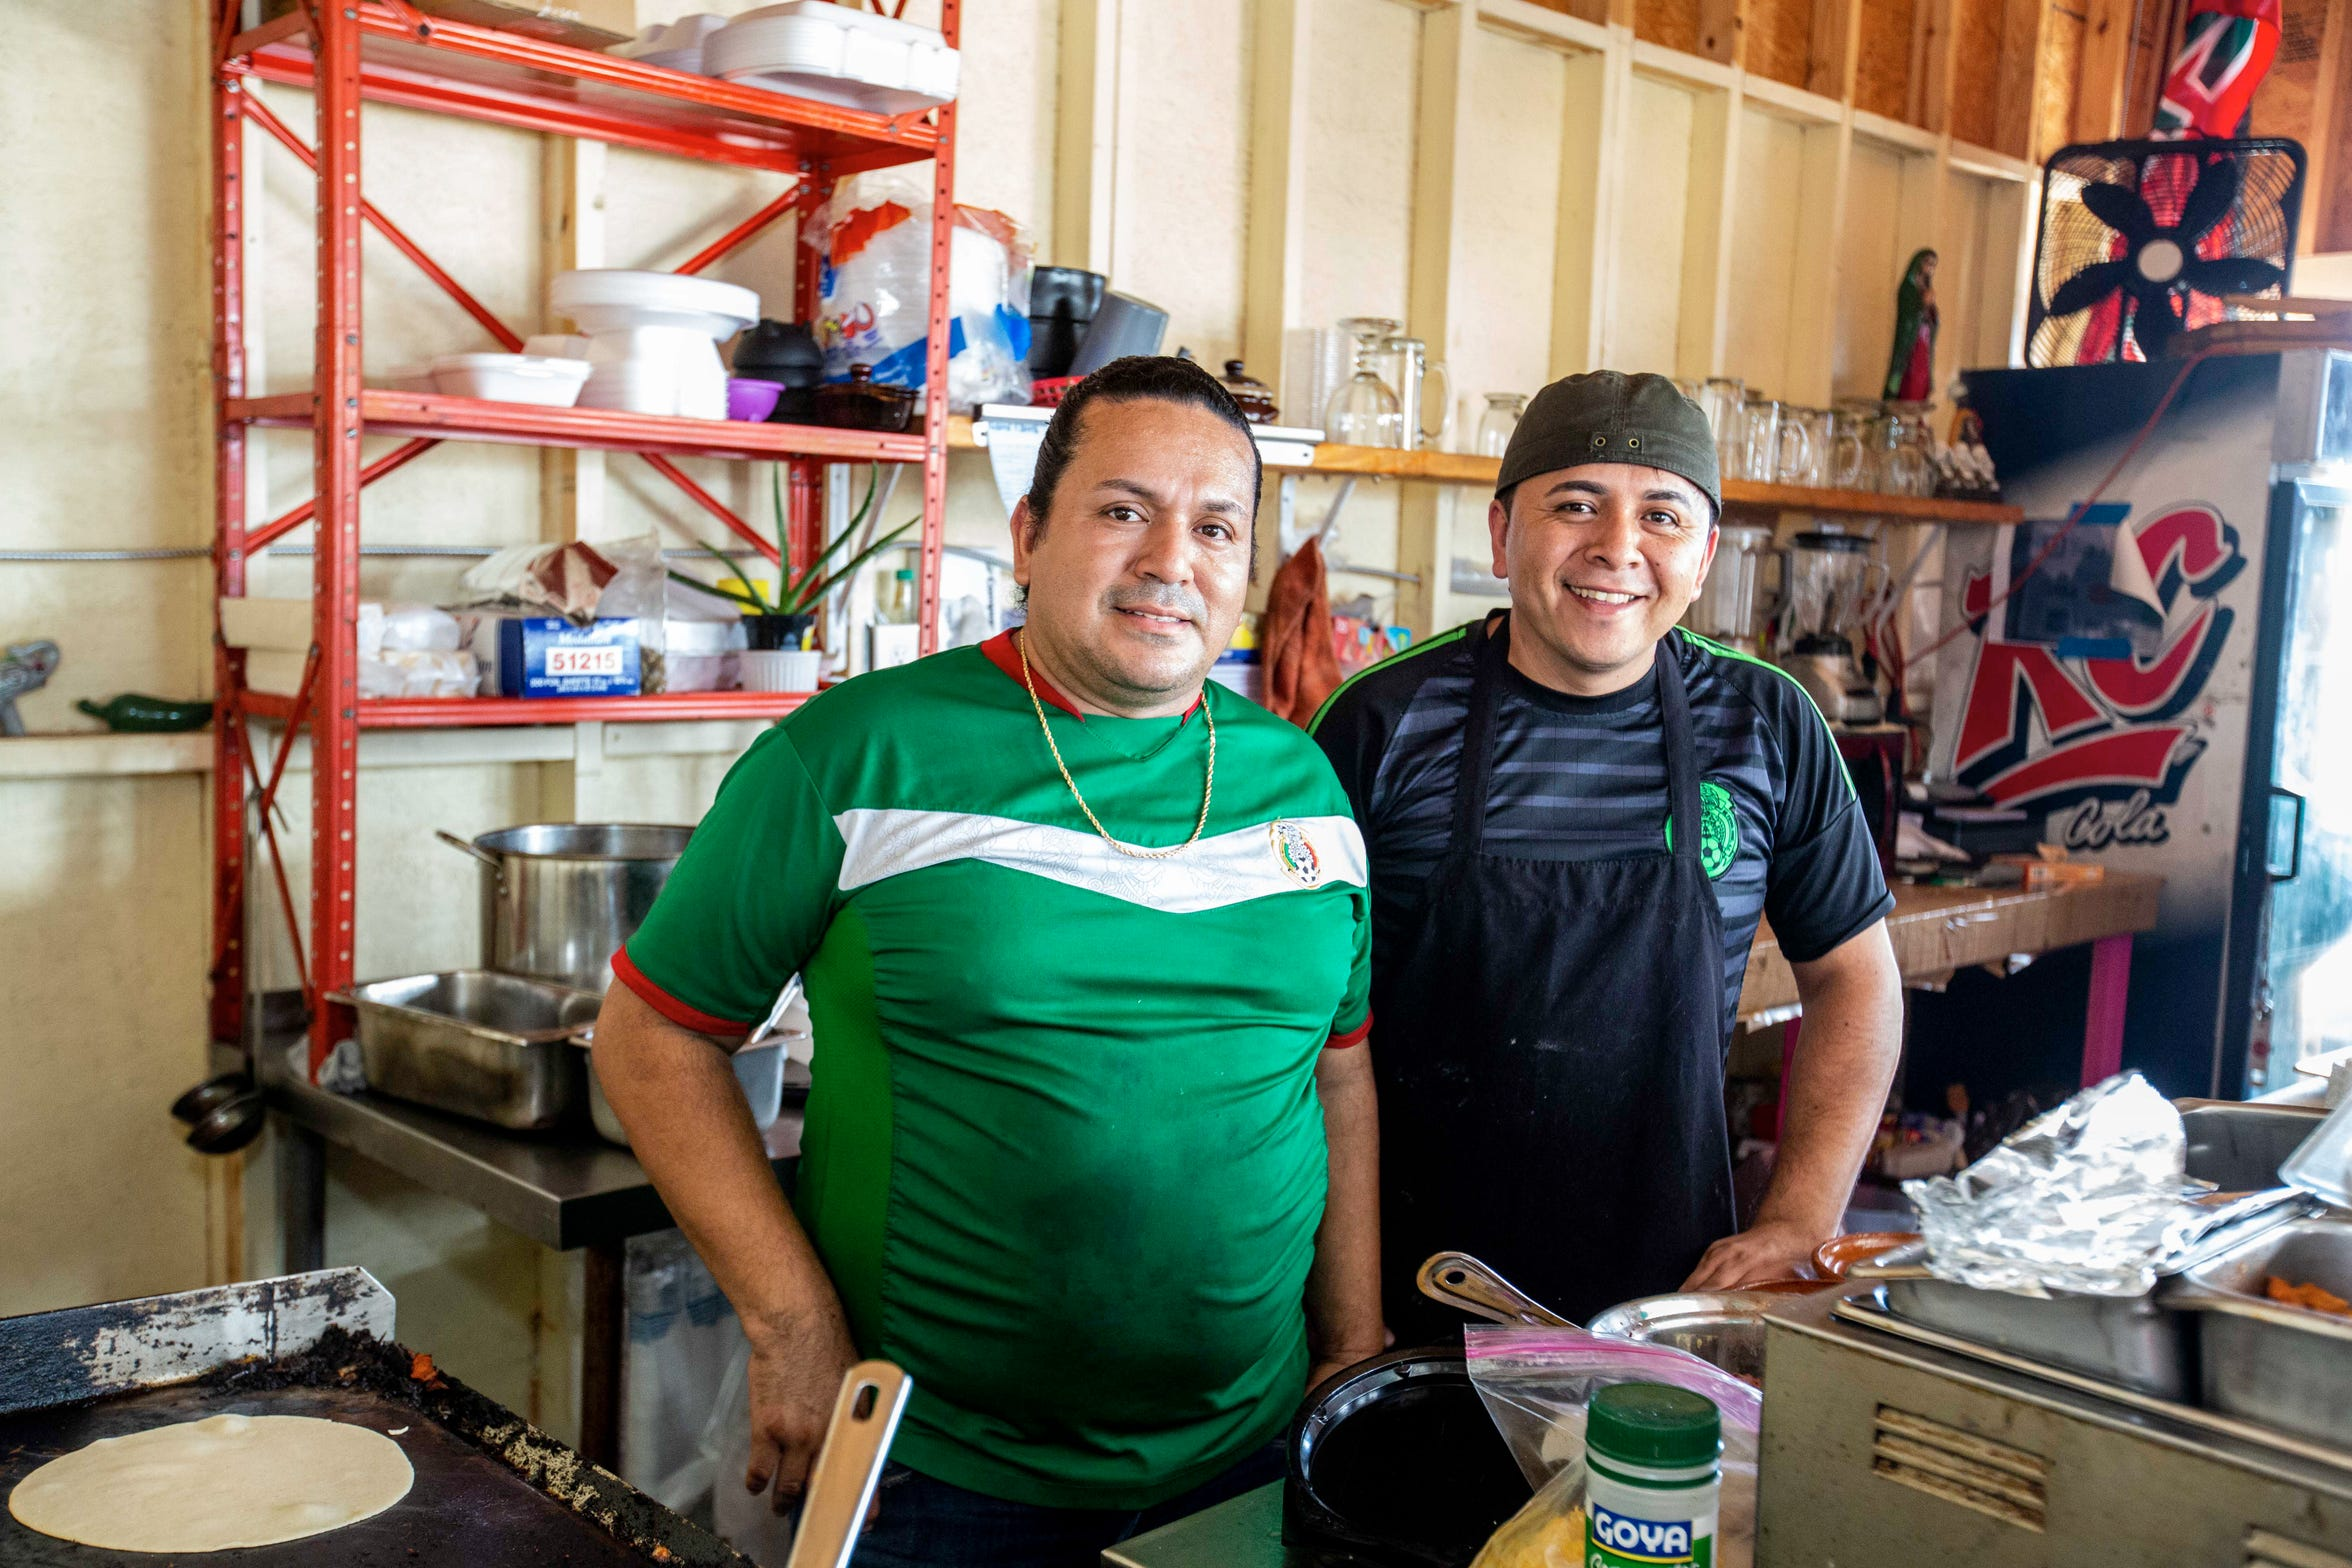 Ivan Castillo (left) and Gilberto Flores (right), life partners and co-owners of Garibaldi Antojitos Mexicanos, one of the first food businesses to open at the West Bank Flea Market.